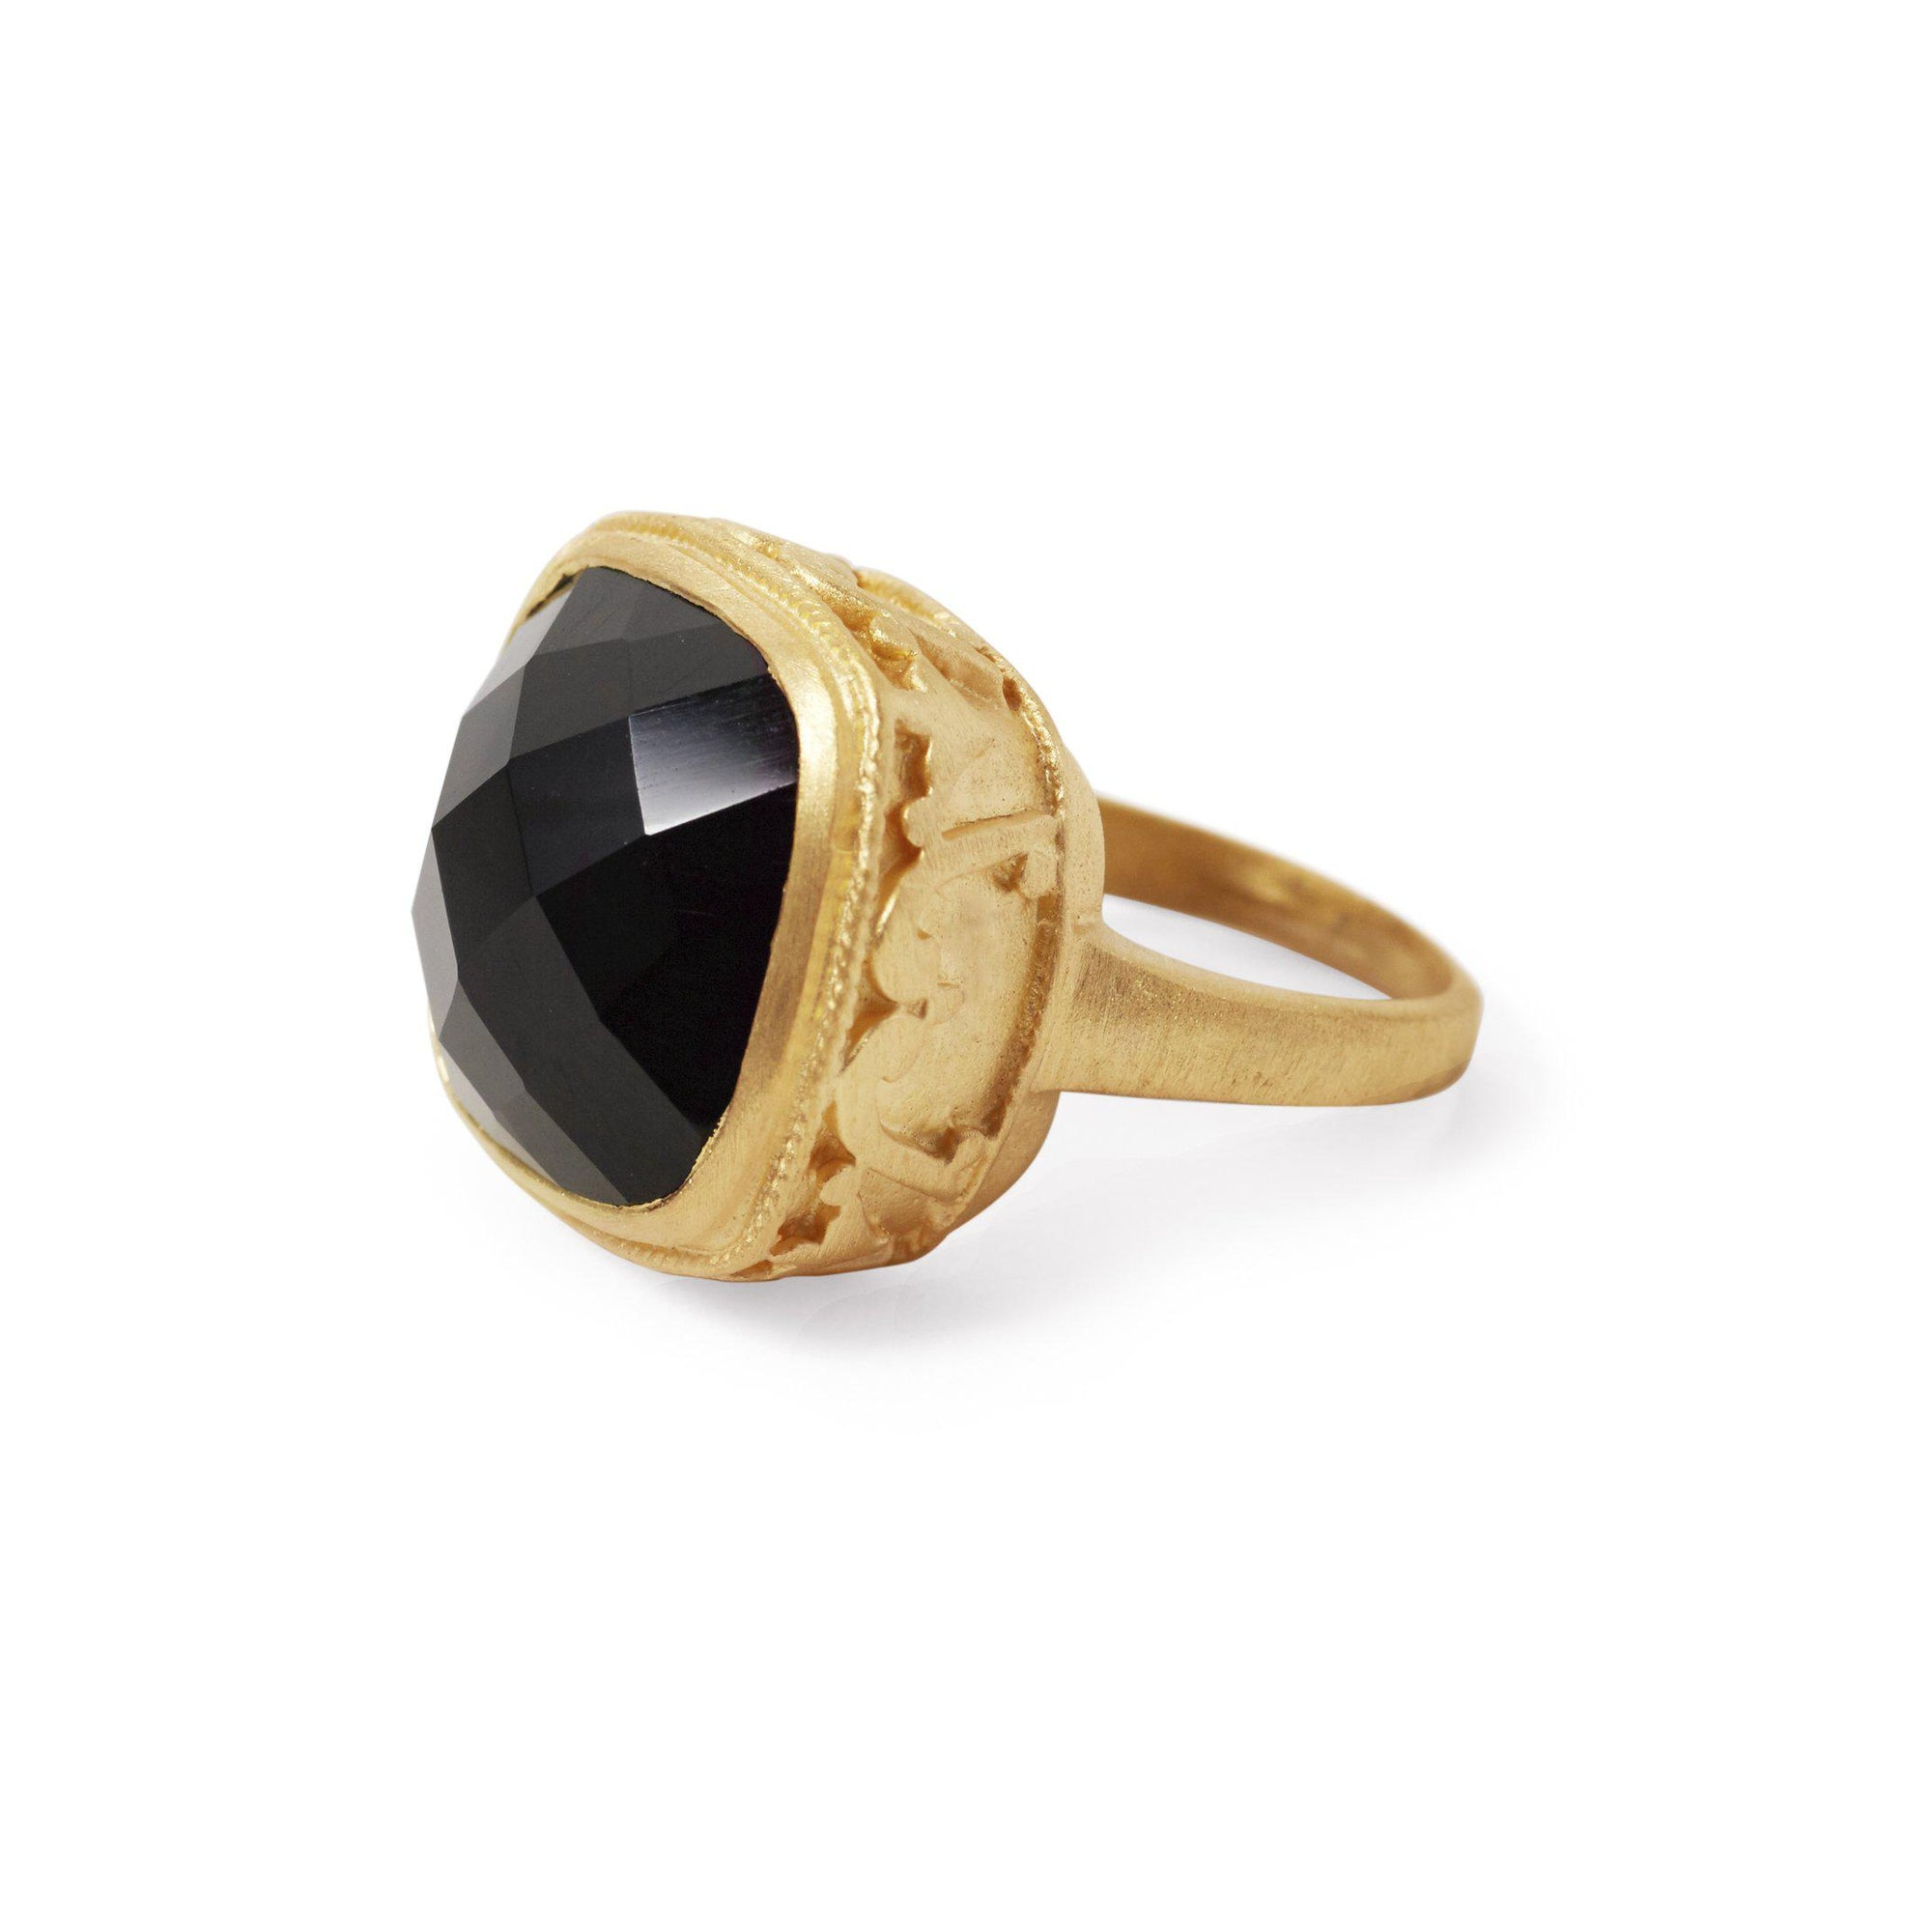 The Ornate Stoned Ring-Ring-Black Betty Design